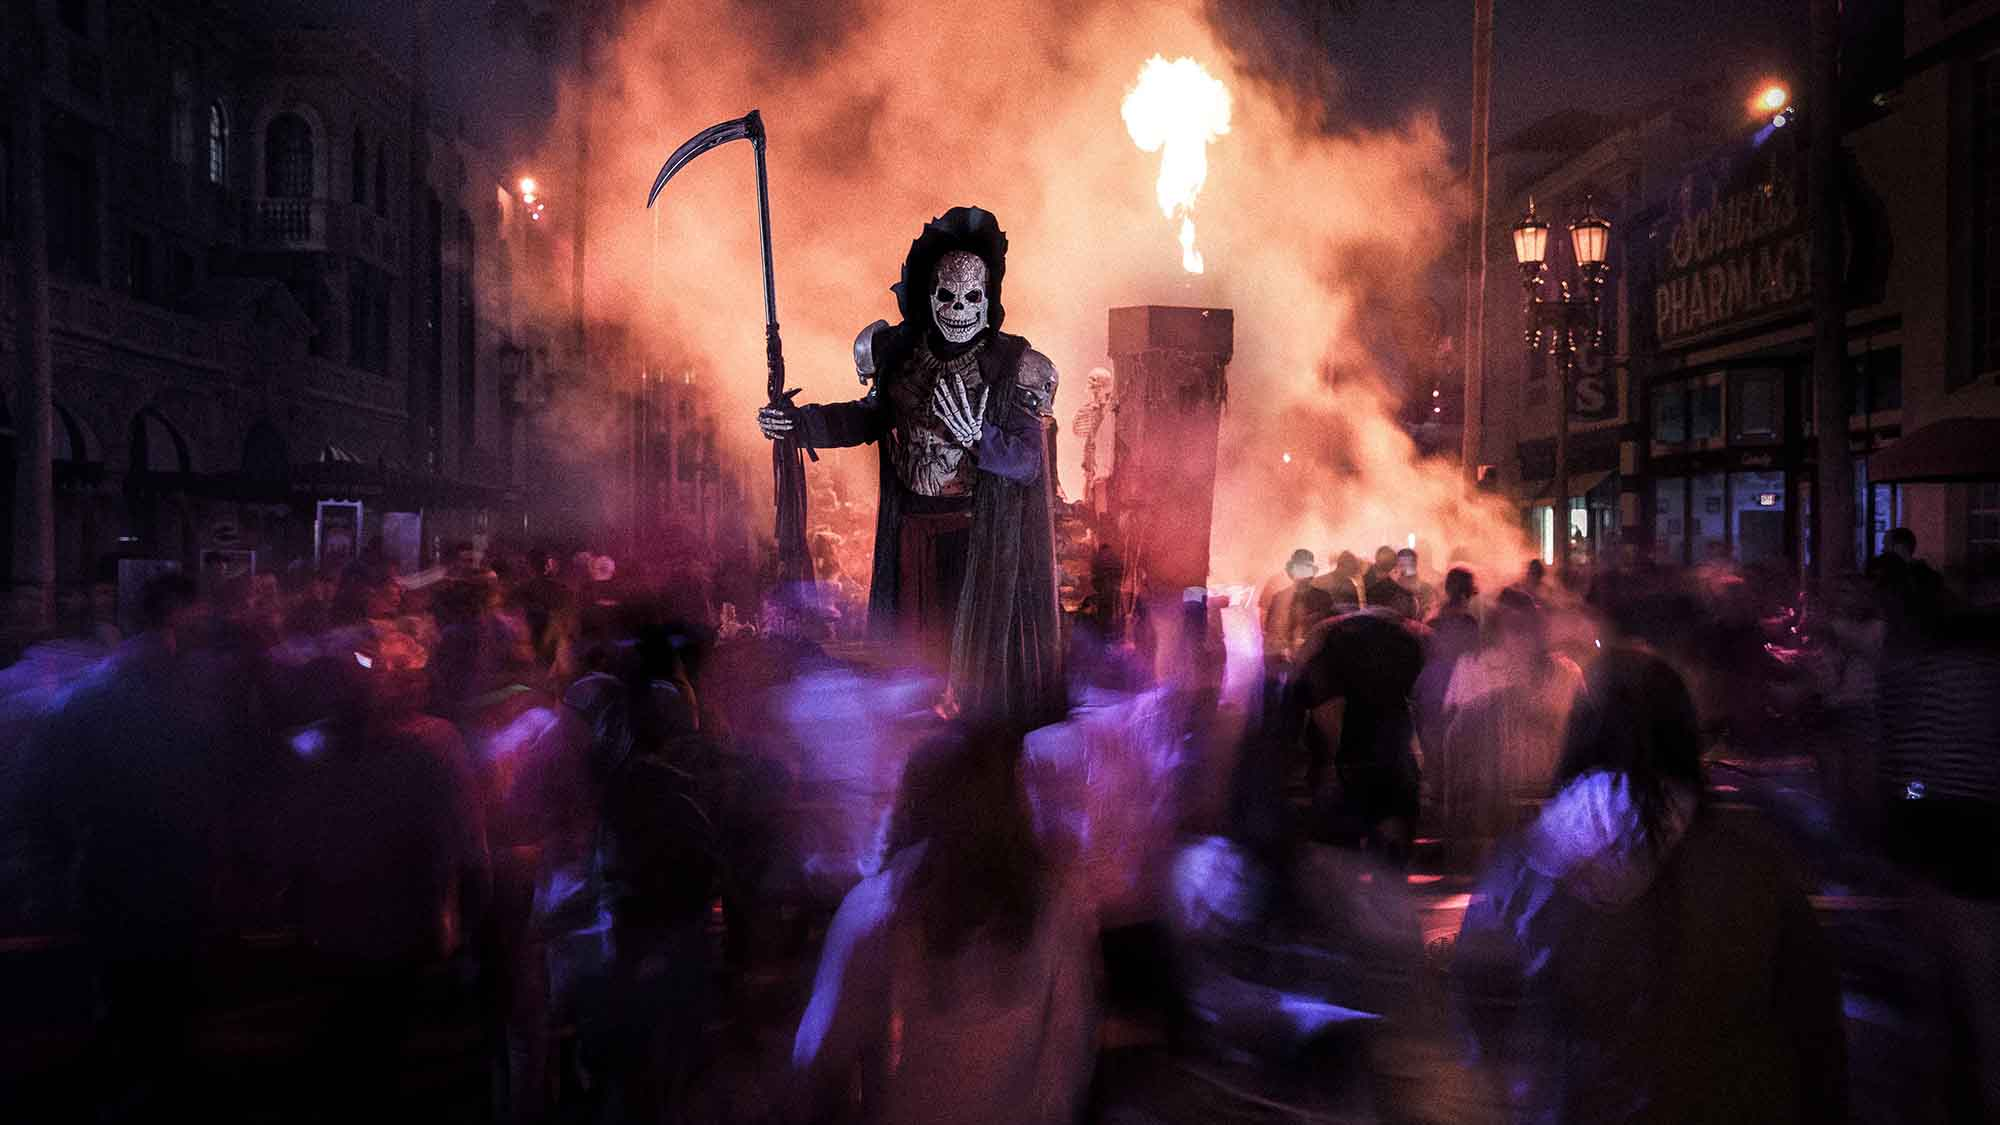 Universal Orlando plans earlier opening date for Halloween